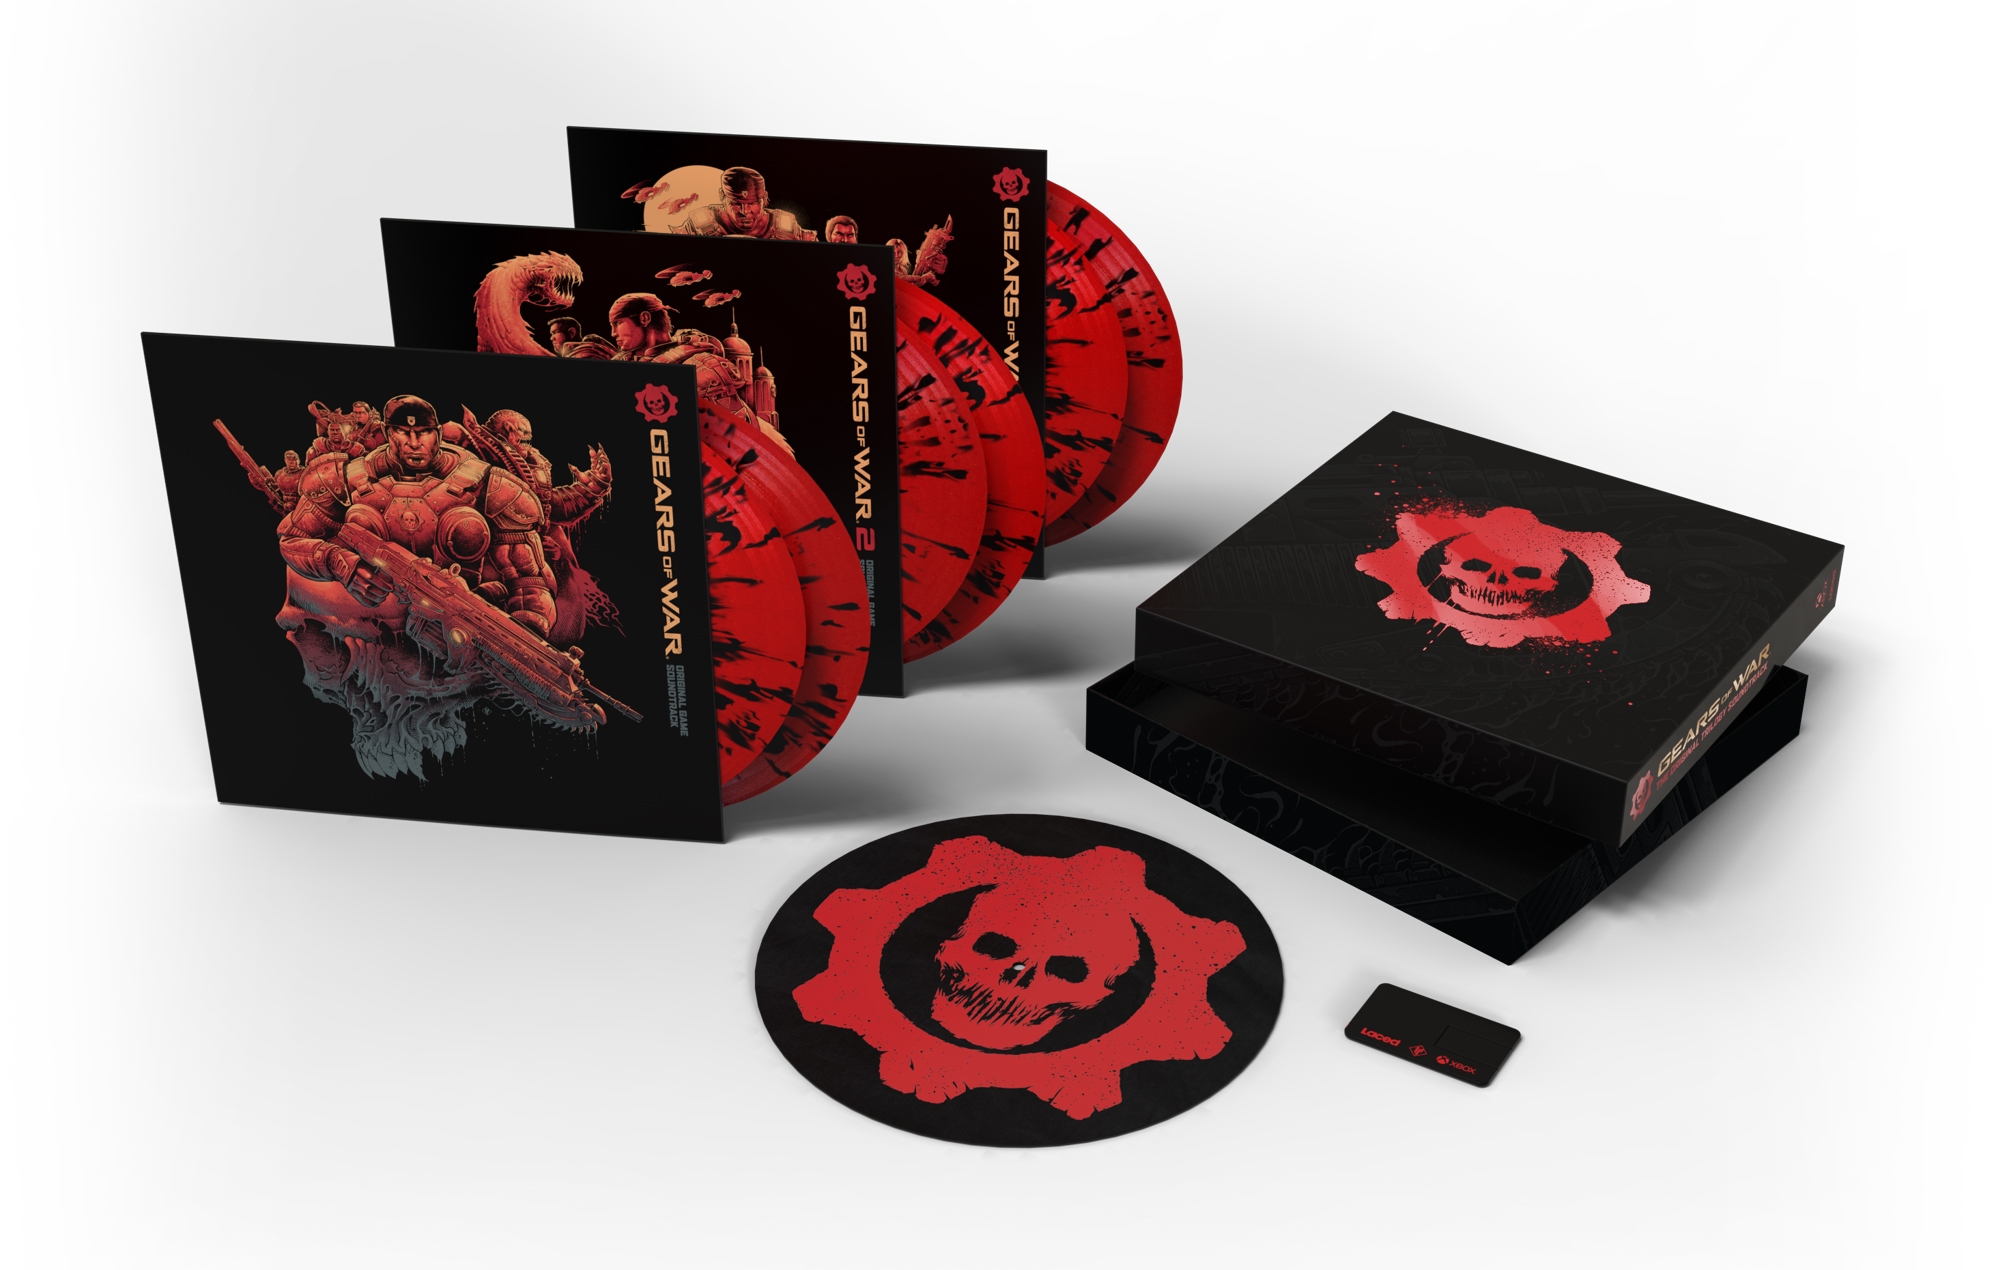 Gears of War: The Original Trilogy Soundtrack Special Limited Edition vinyl box set